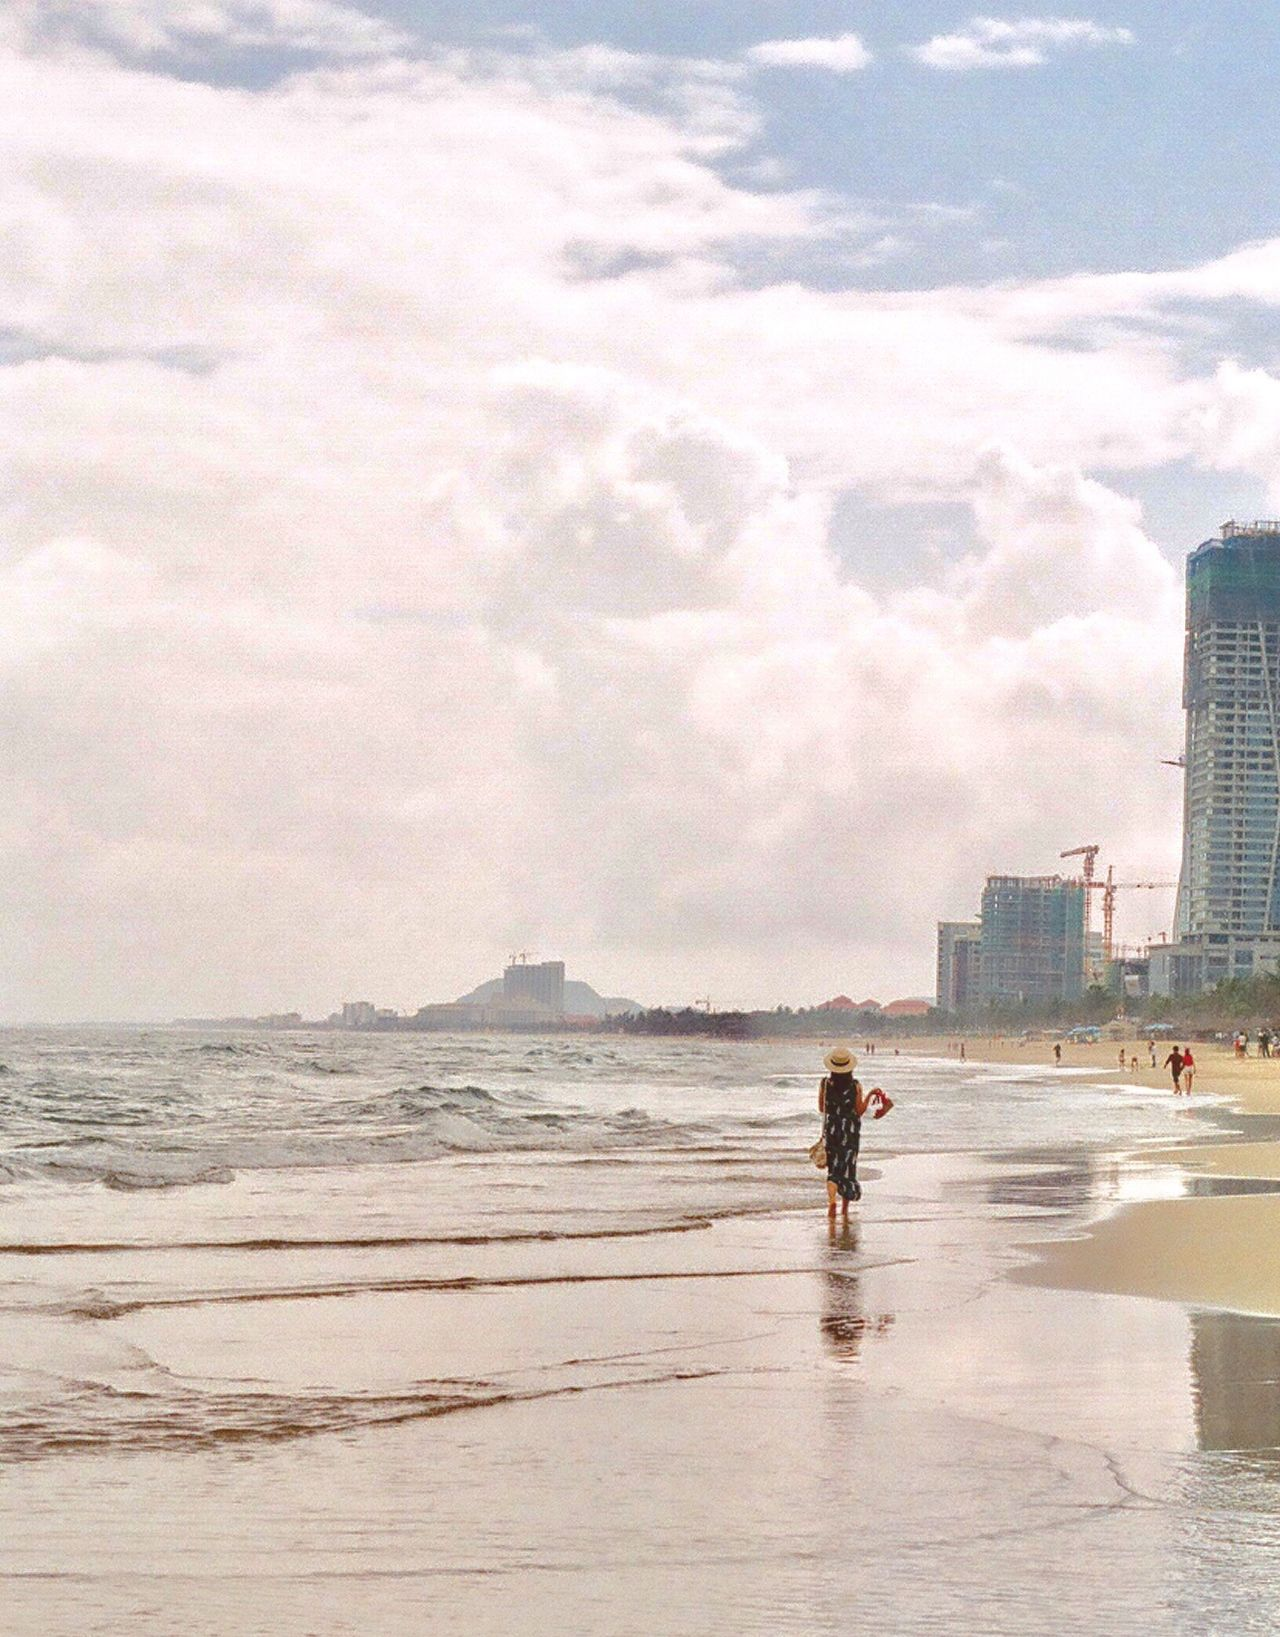 Sea Sky Lifestyles Architecture Water Beach Full Length Walking Building Exterior Outdoors Cloud - Sky Built Structure Women Rear View Day Togetherness Vietnam Light And Shadow Danang Holiday Travel Relaxing Filmphotography Beauty In Nature Filmisnotdead